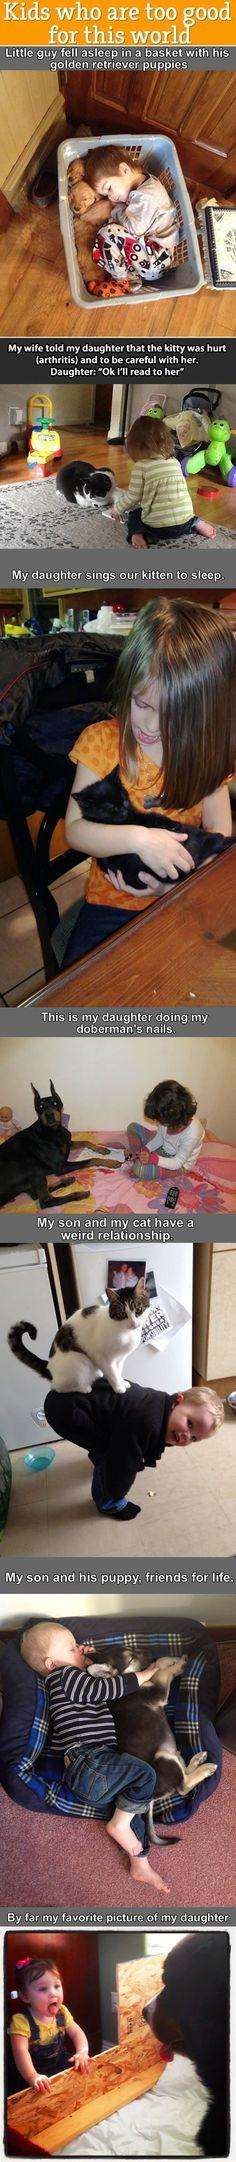 Funny pictures of the day (53 pics)